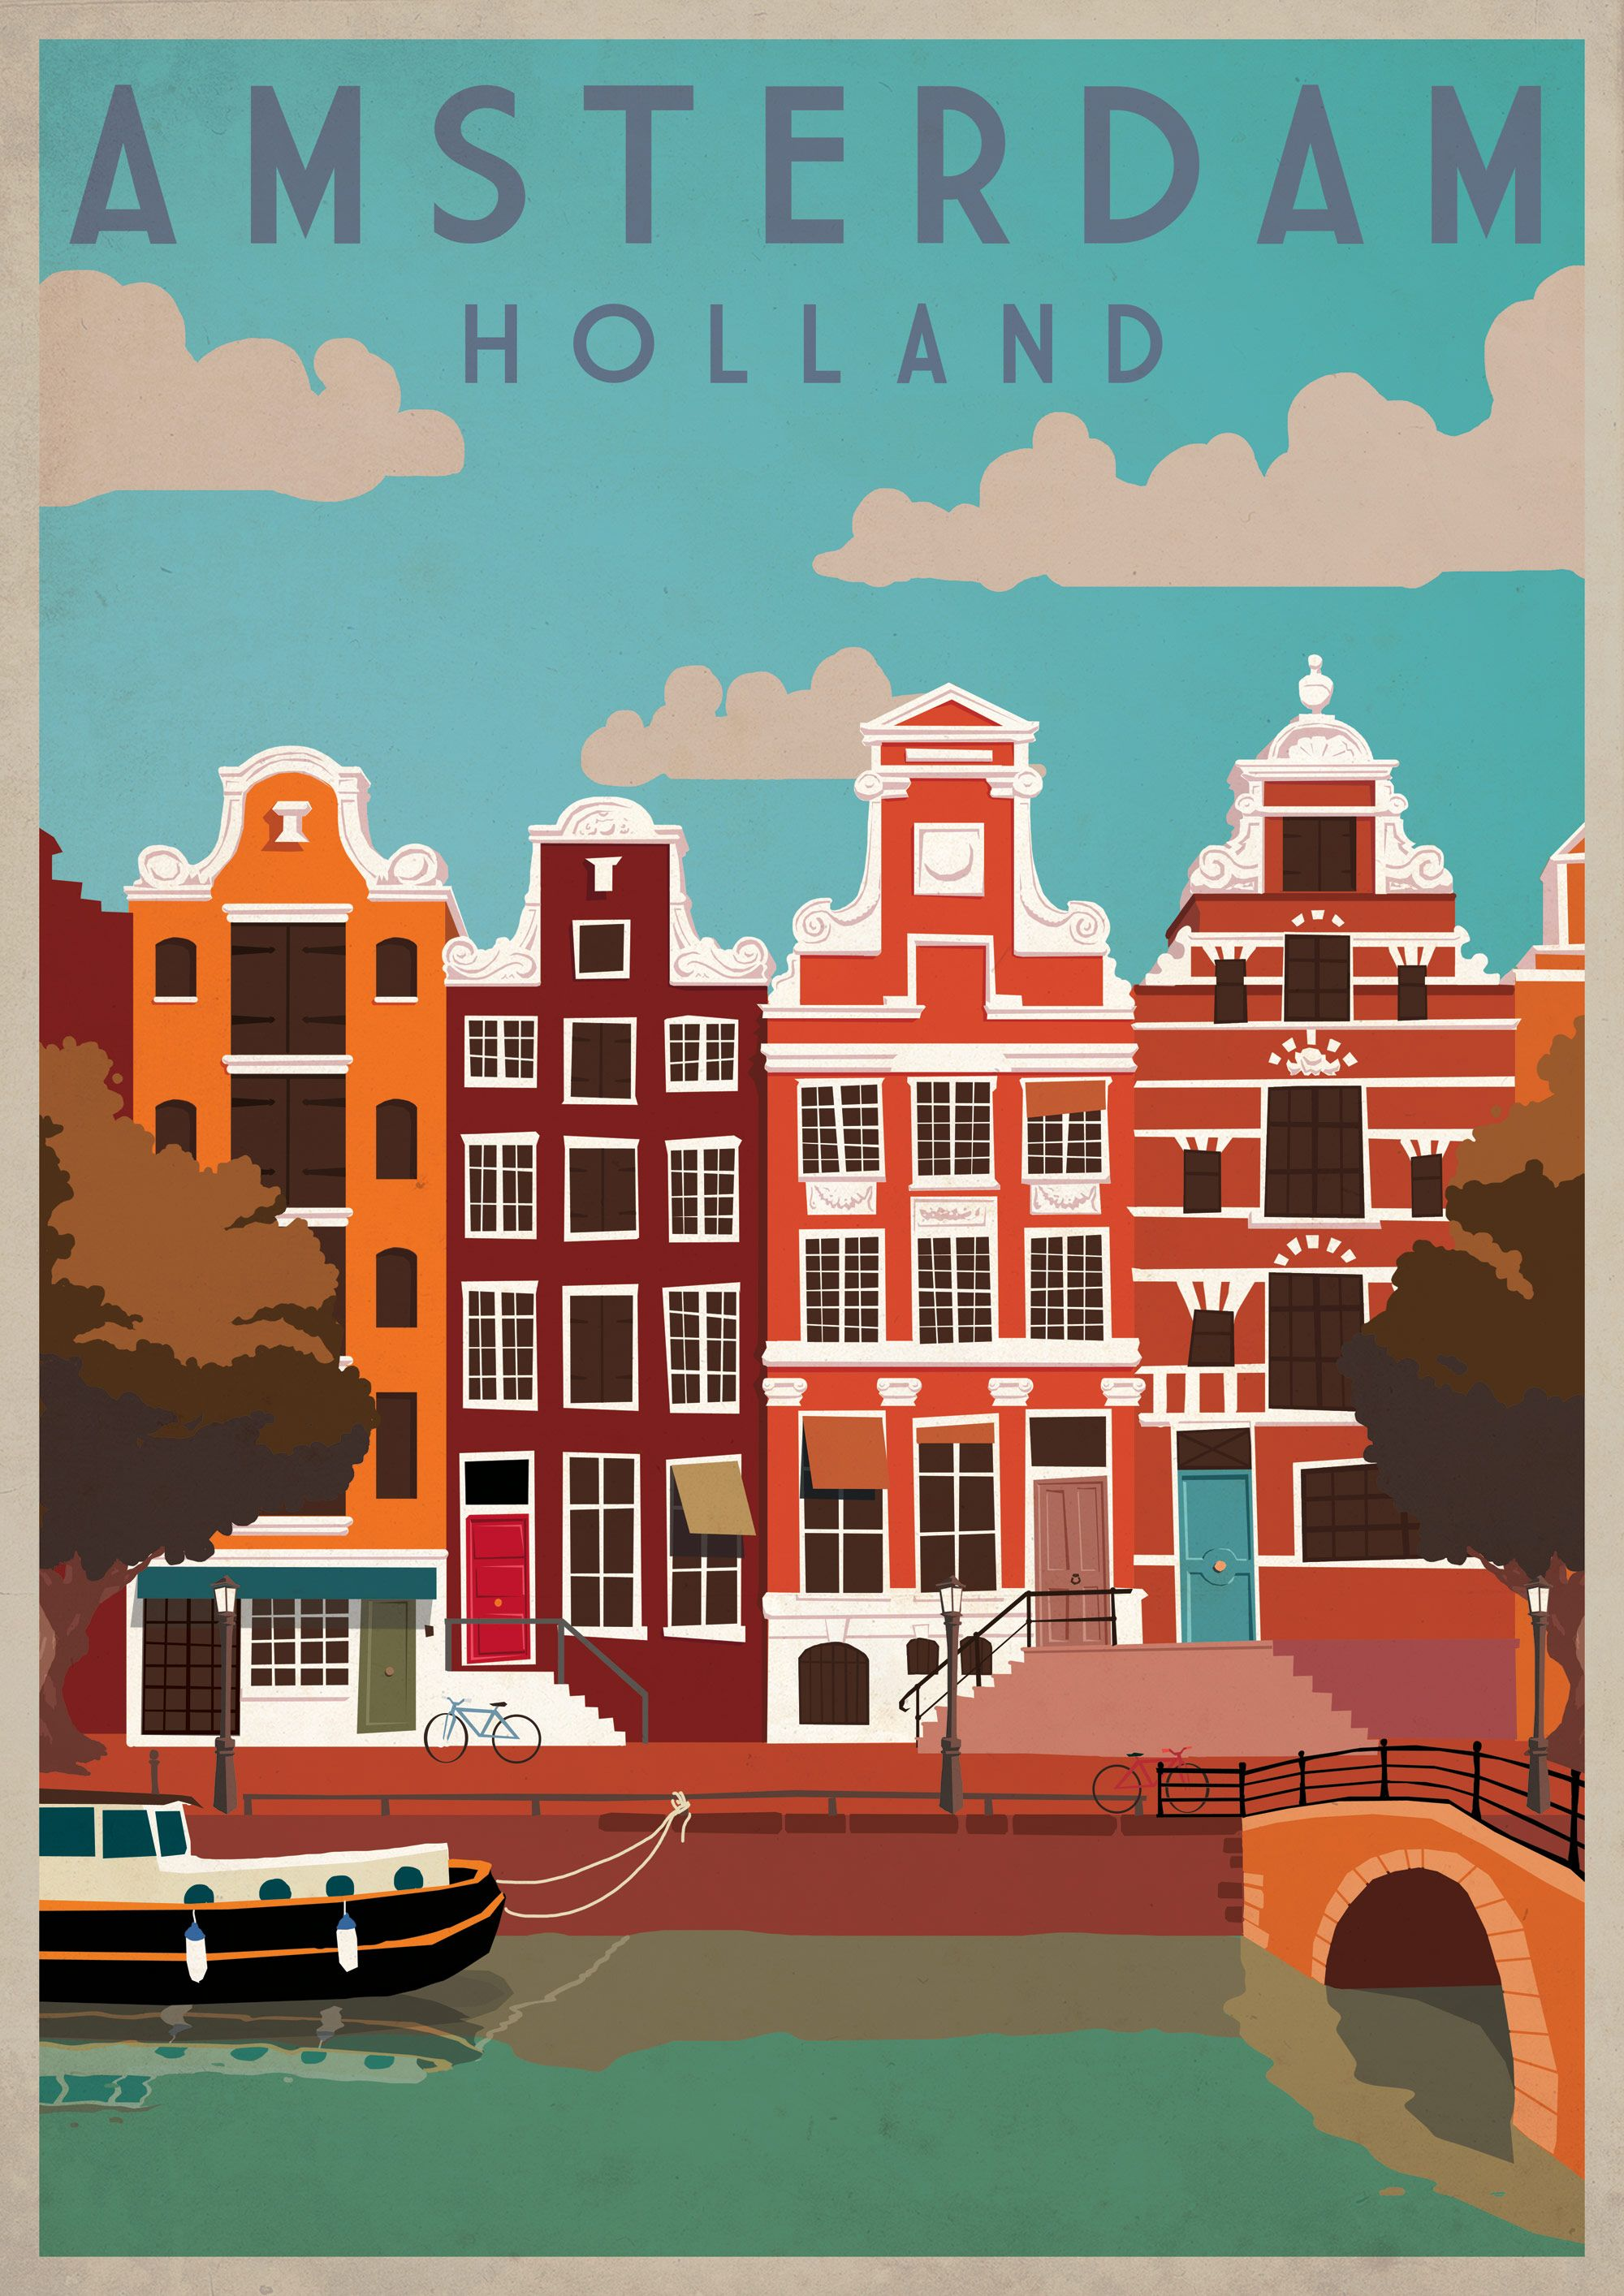 17 vintage travel posters that will give you wanderlust